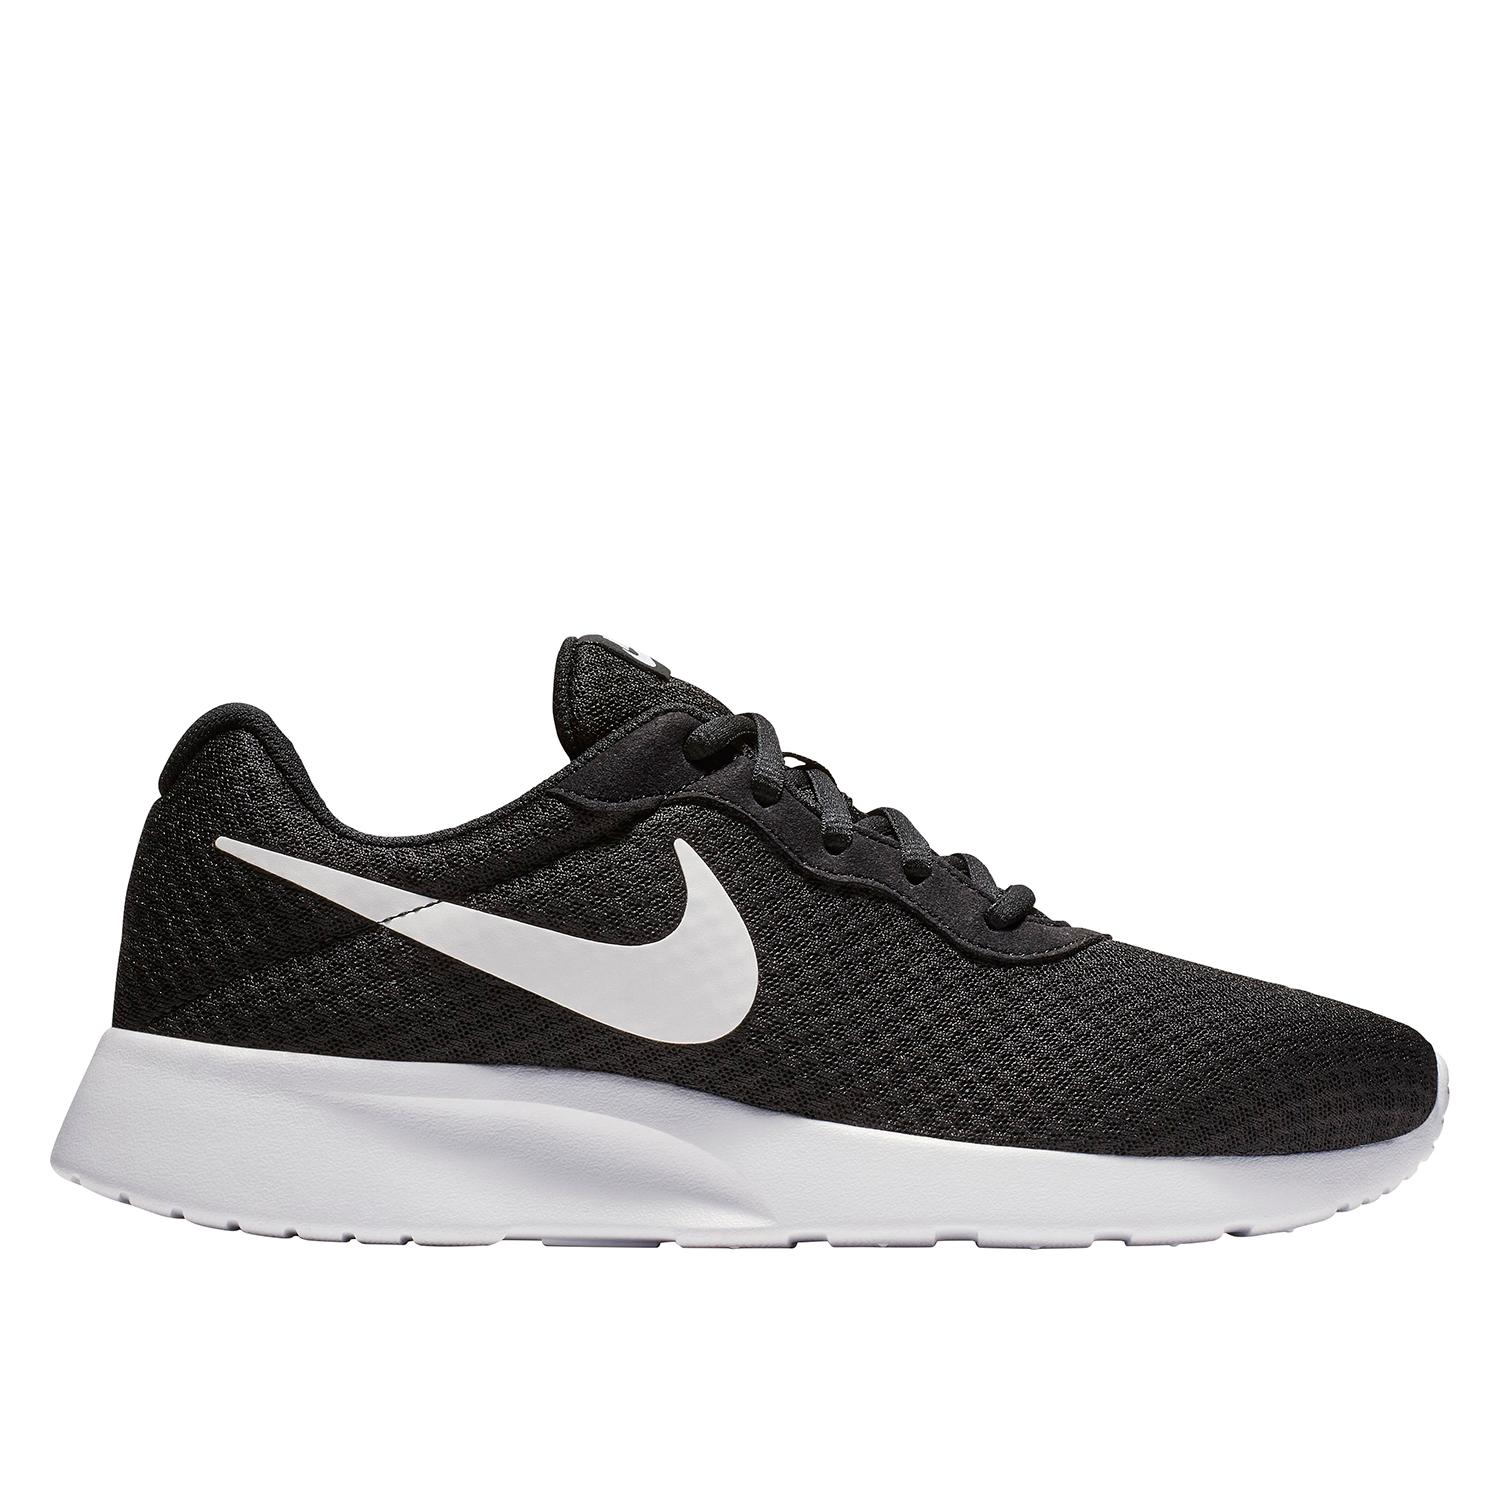 official photos f0fe9 4a2b6 Nike Tanjun Women s Casual Shoe in Black - Intersport Australia